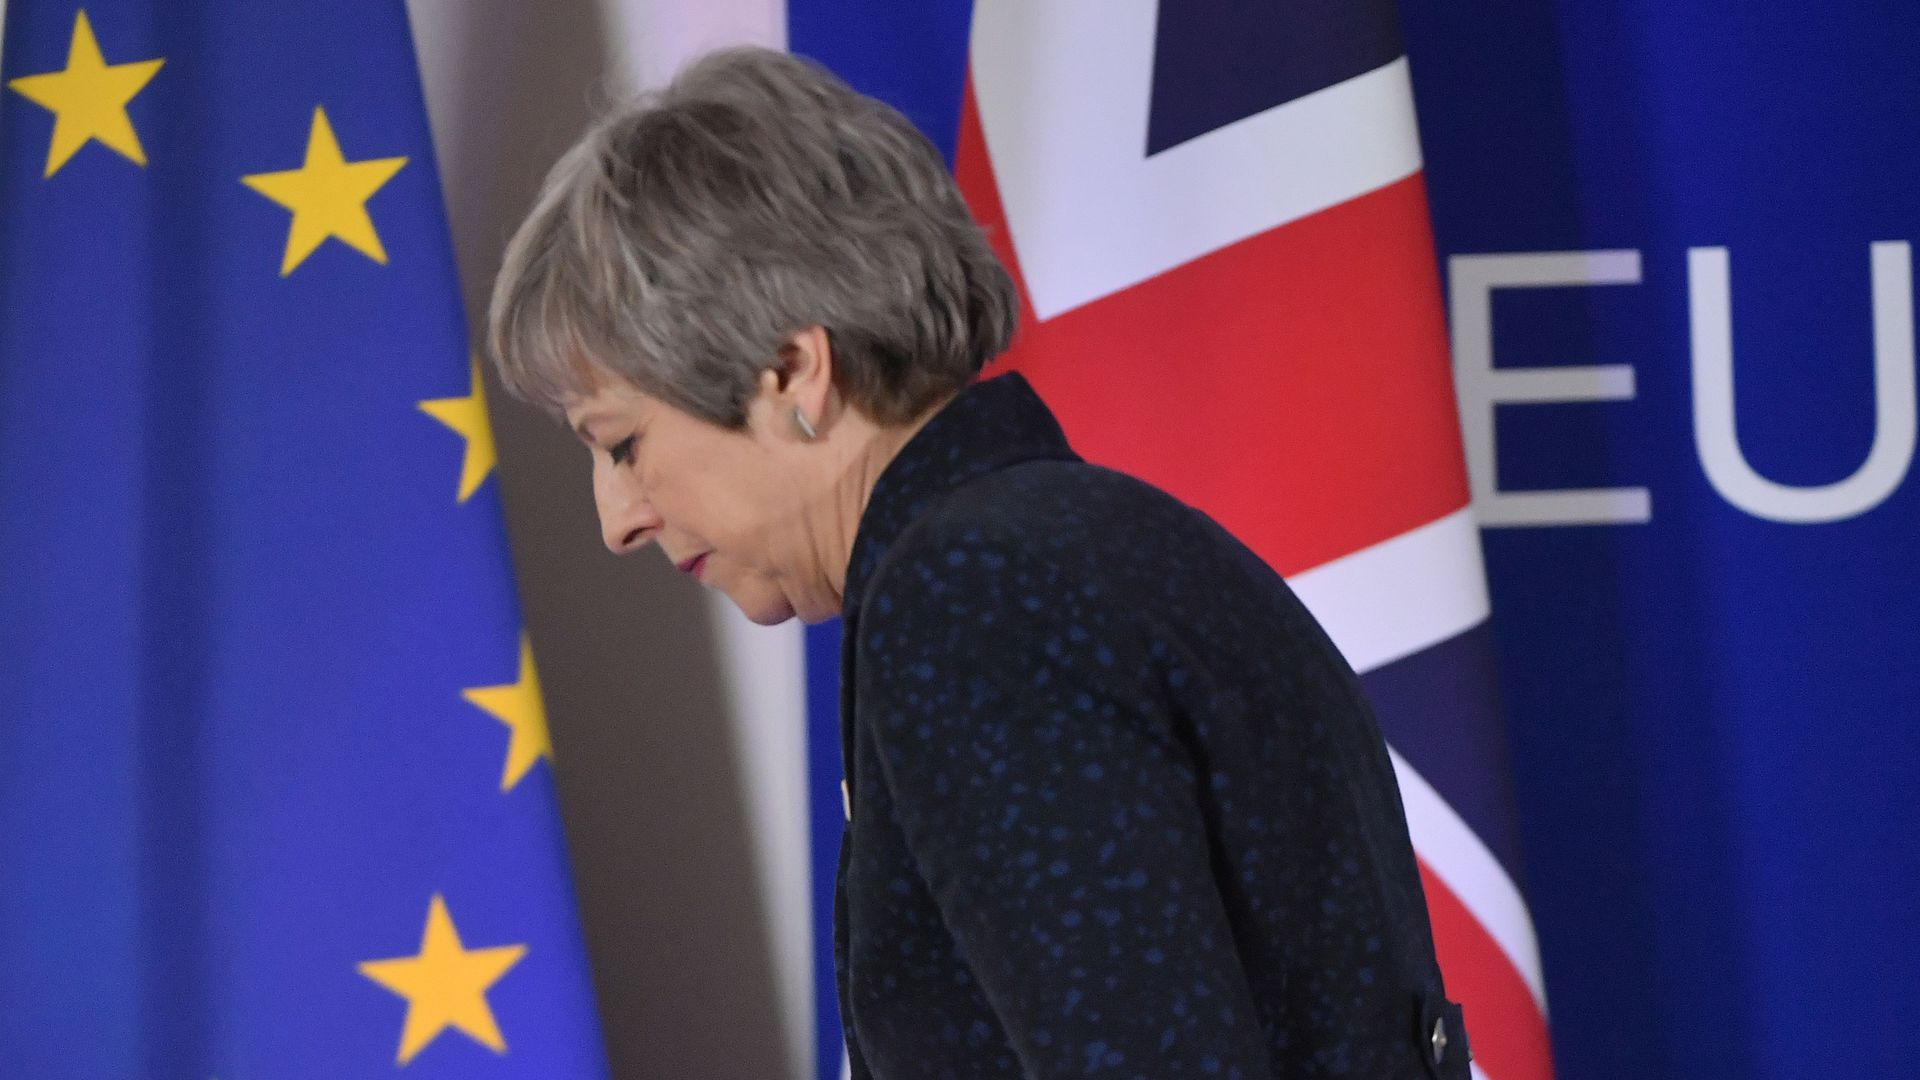 British Prime Minister Theresa May has temporarily lost control of the Brexit process.